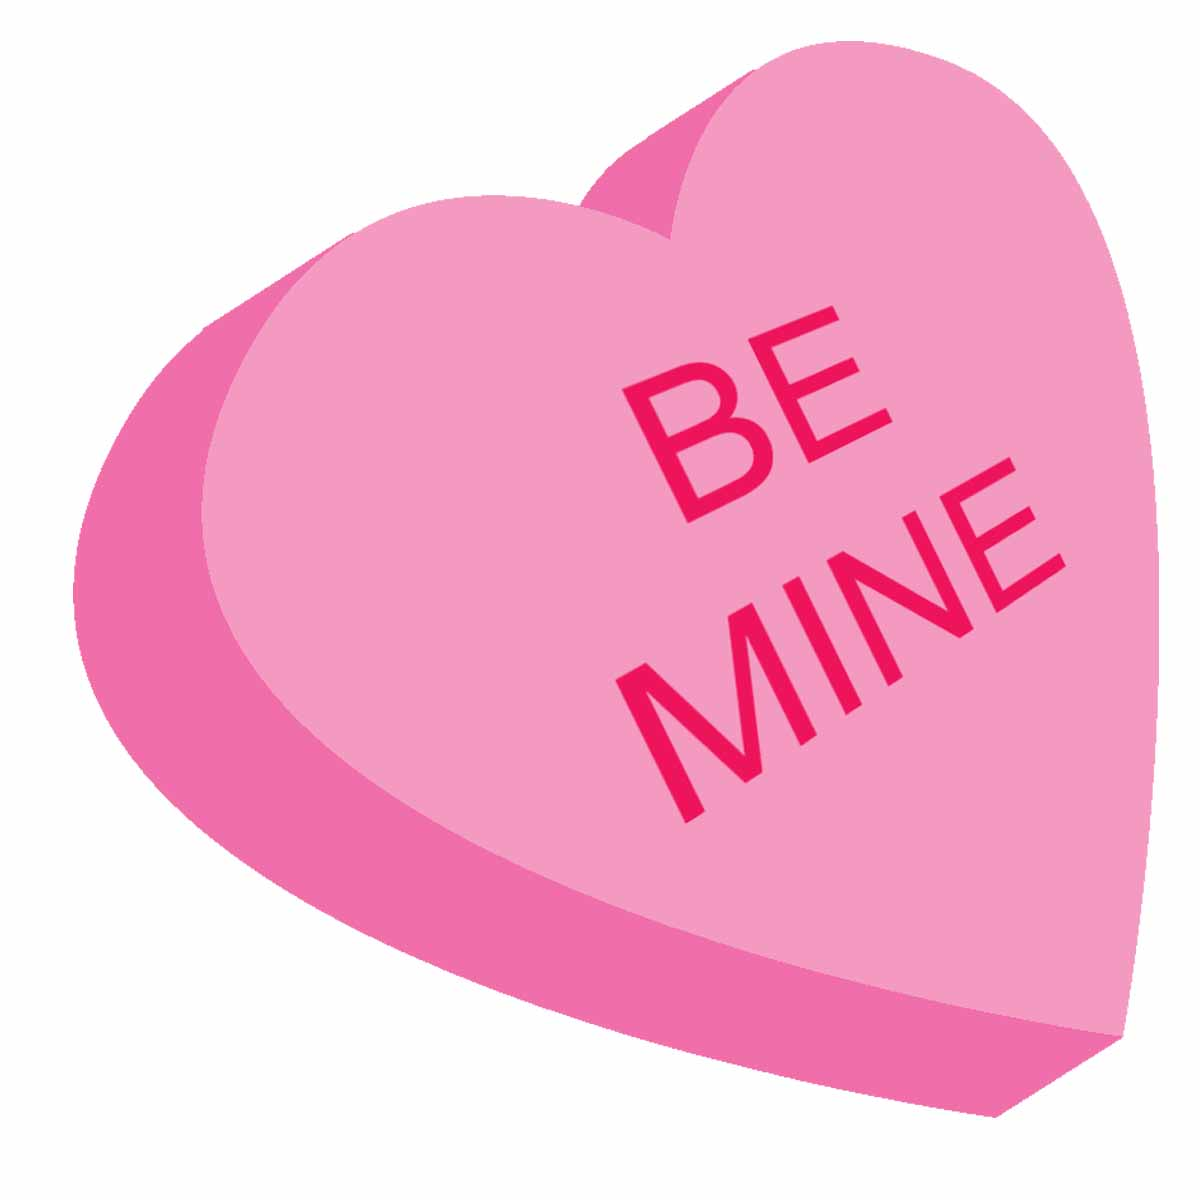 Valentines candy . February clipart valentine's day chocolate